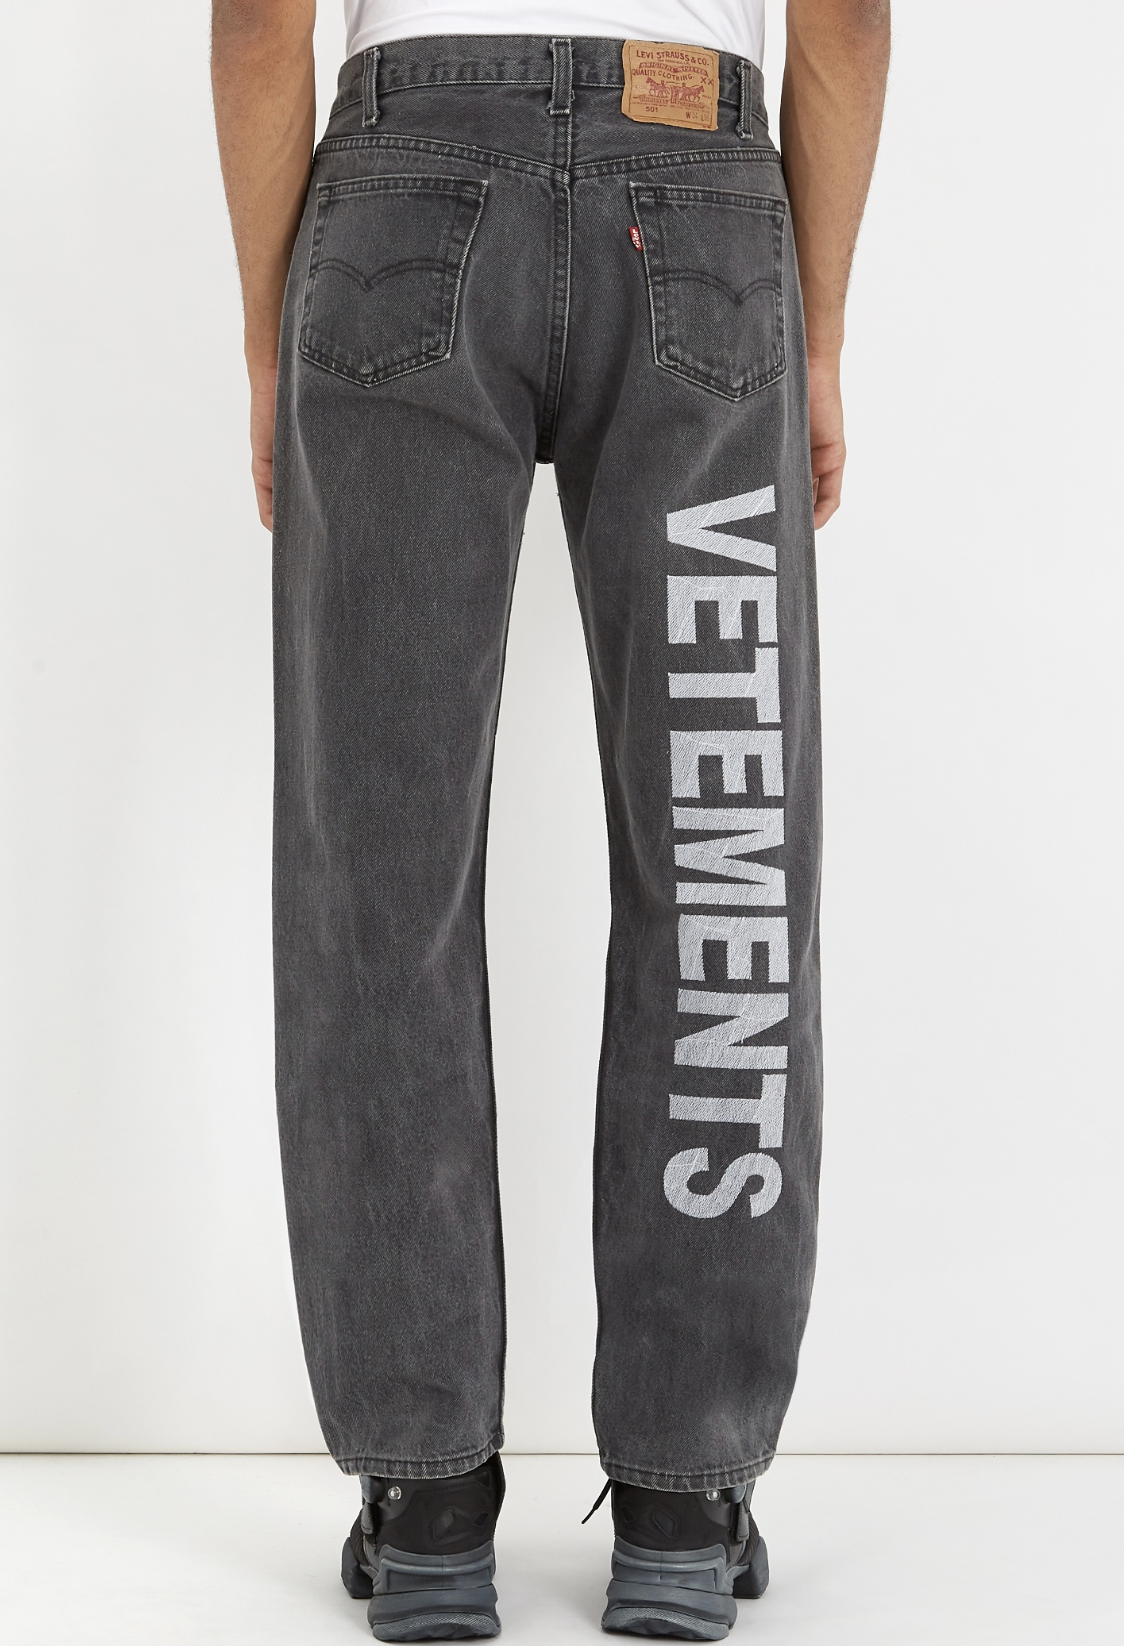 X Levis jeans VETEMENTS yfnXPi